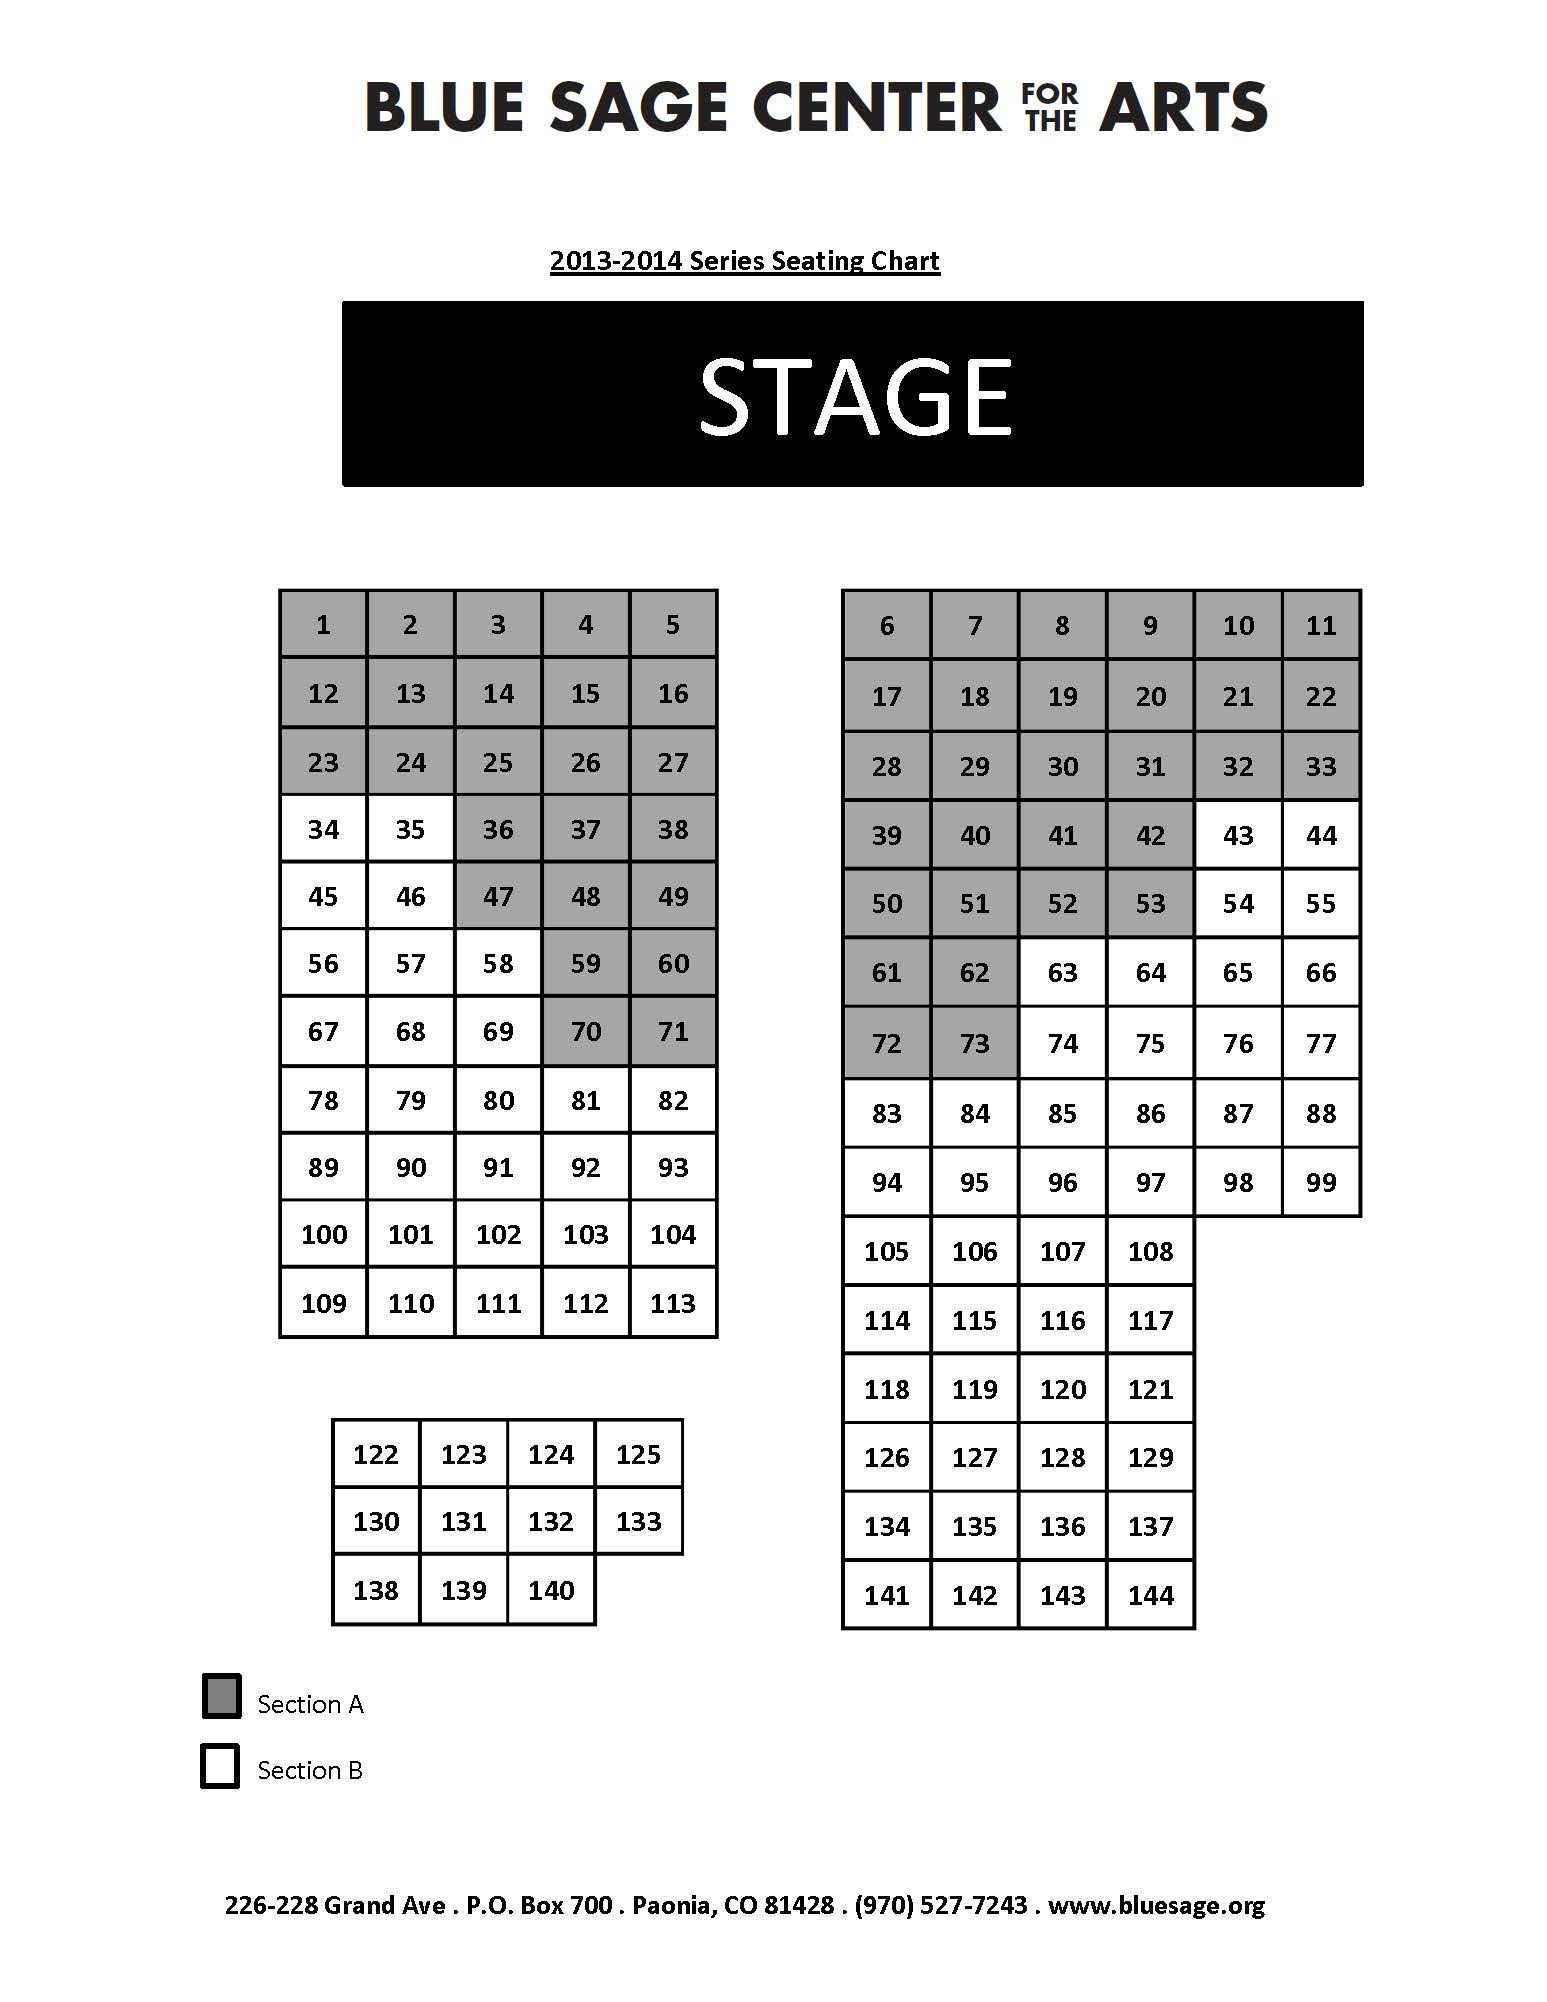 Series Seating Chart